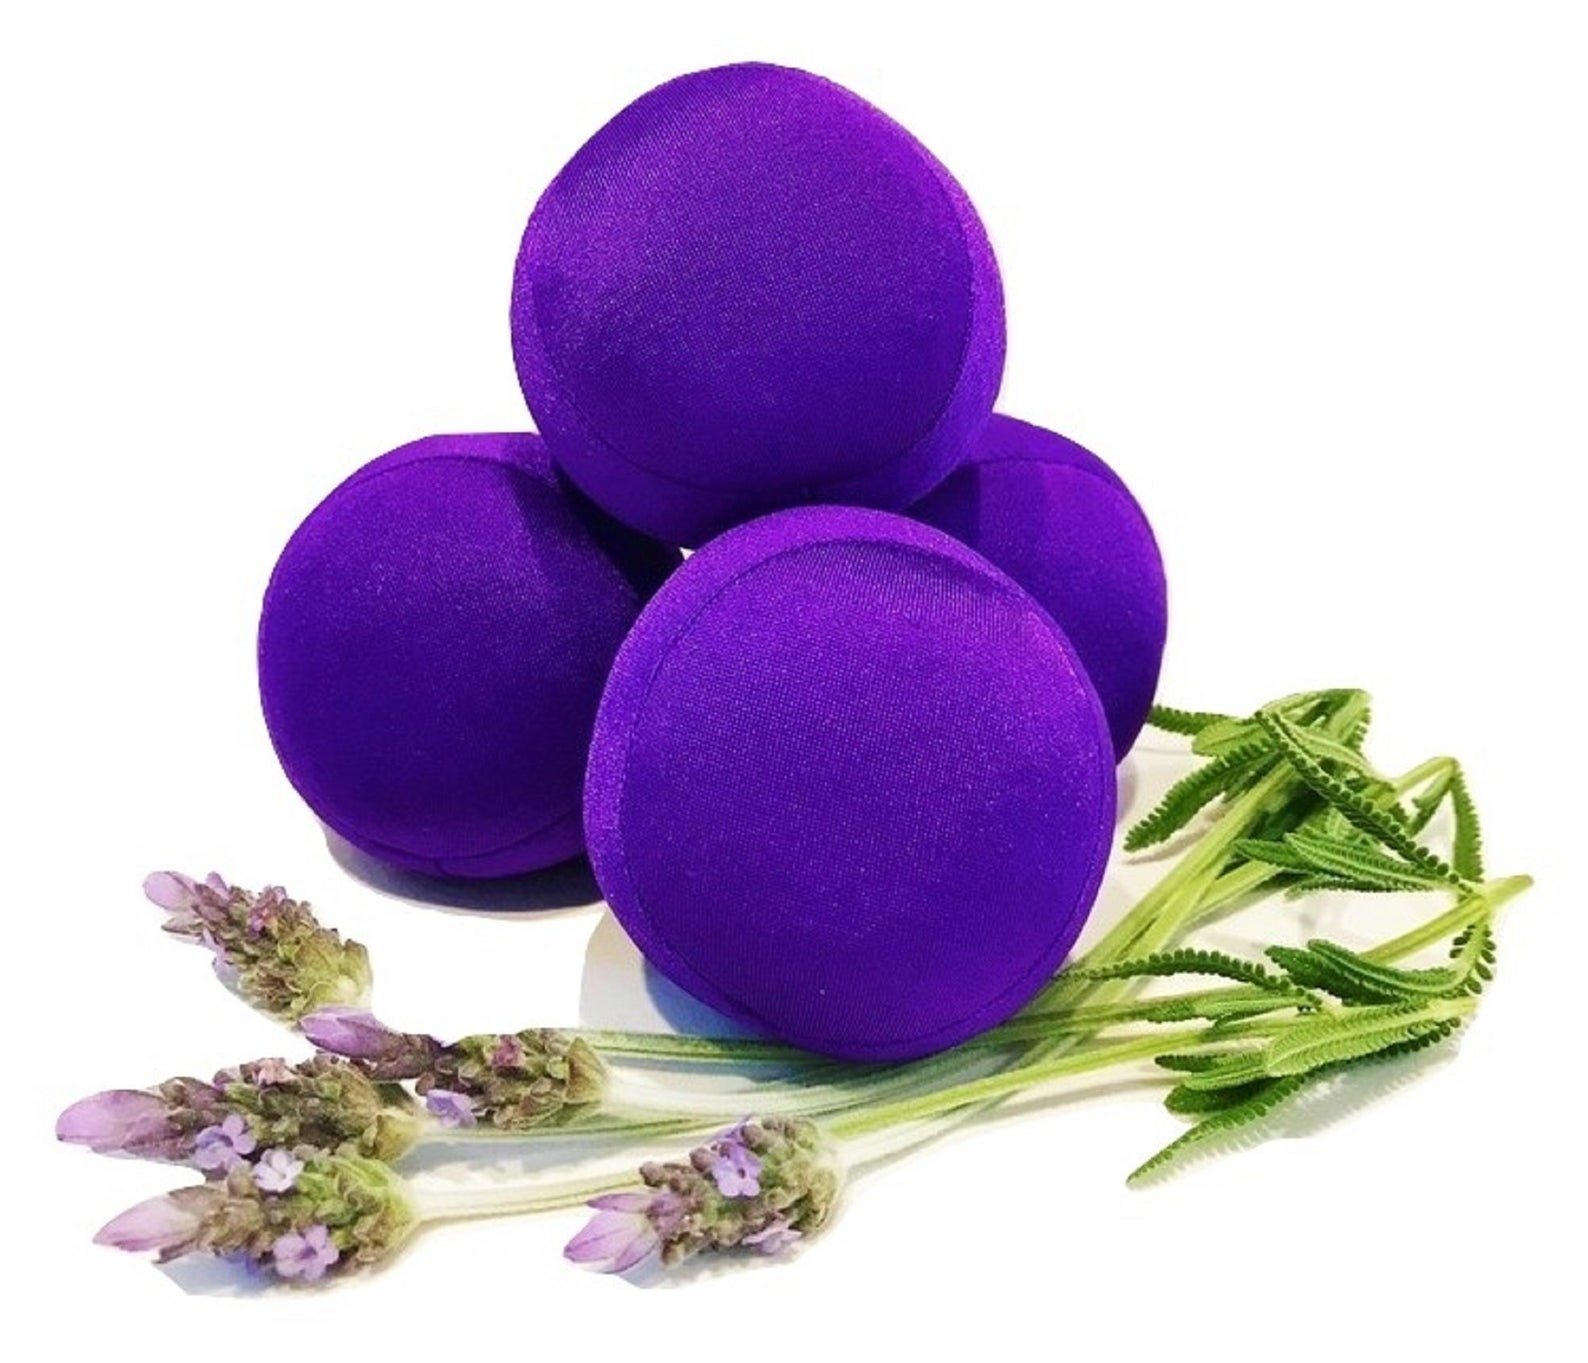 Four small round purple balls next to lavender